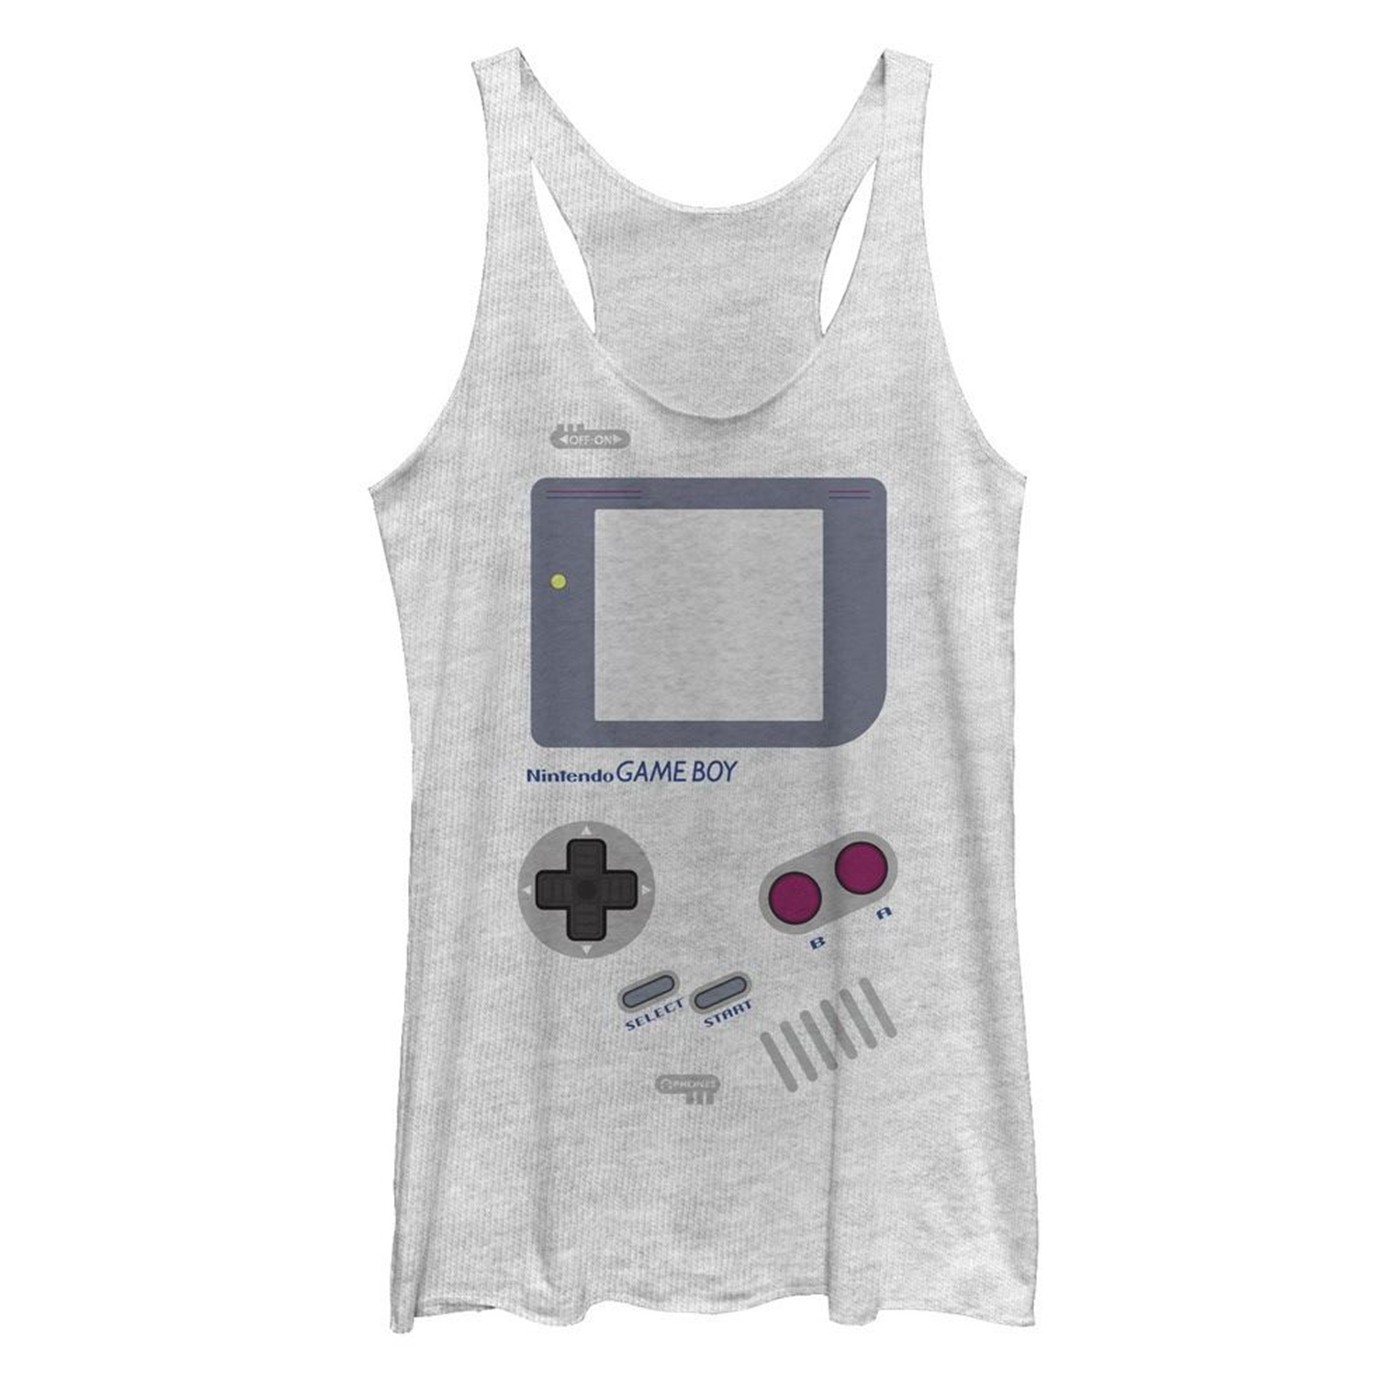 Nintendo Gameboy Women's Tank Top